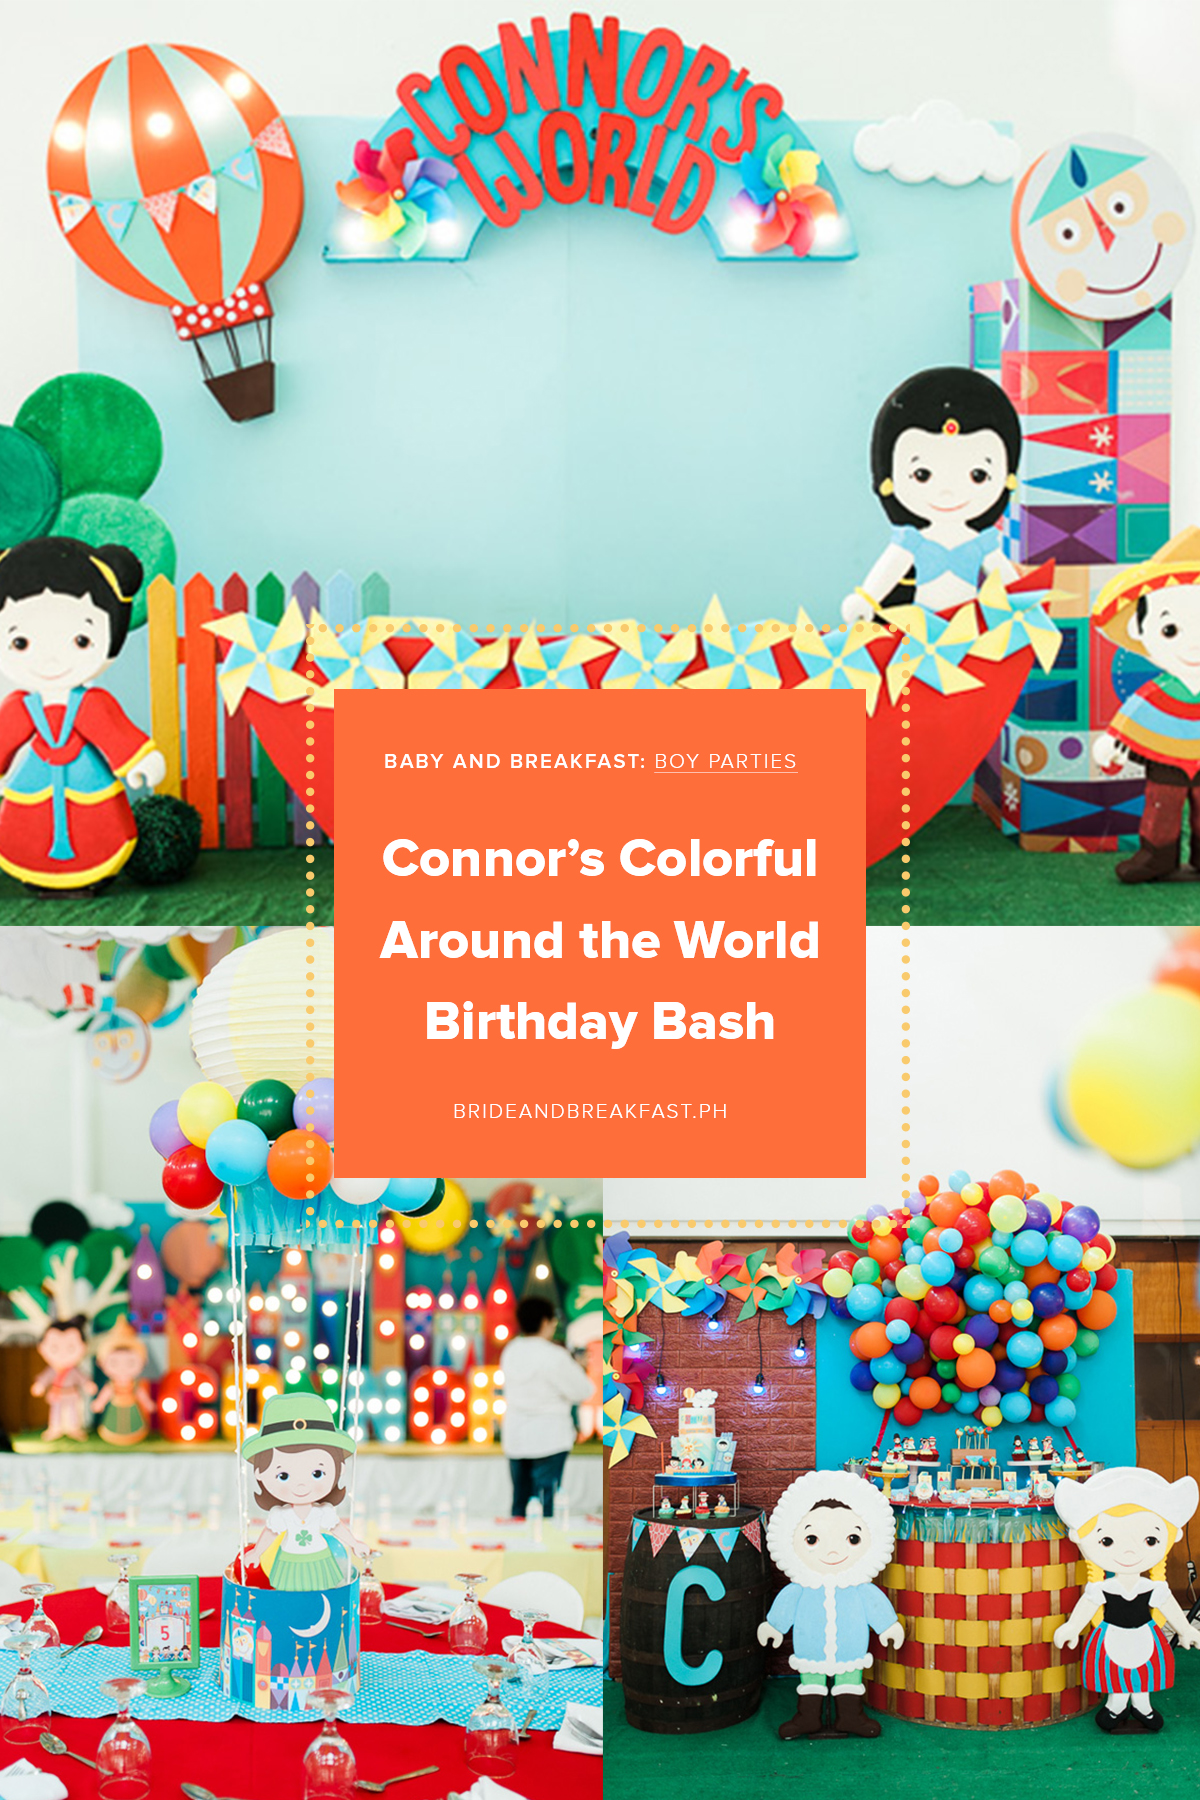 Baby and Breakfast: Boy Parties Connor's Colorful Around the World Birthday Bash